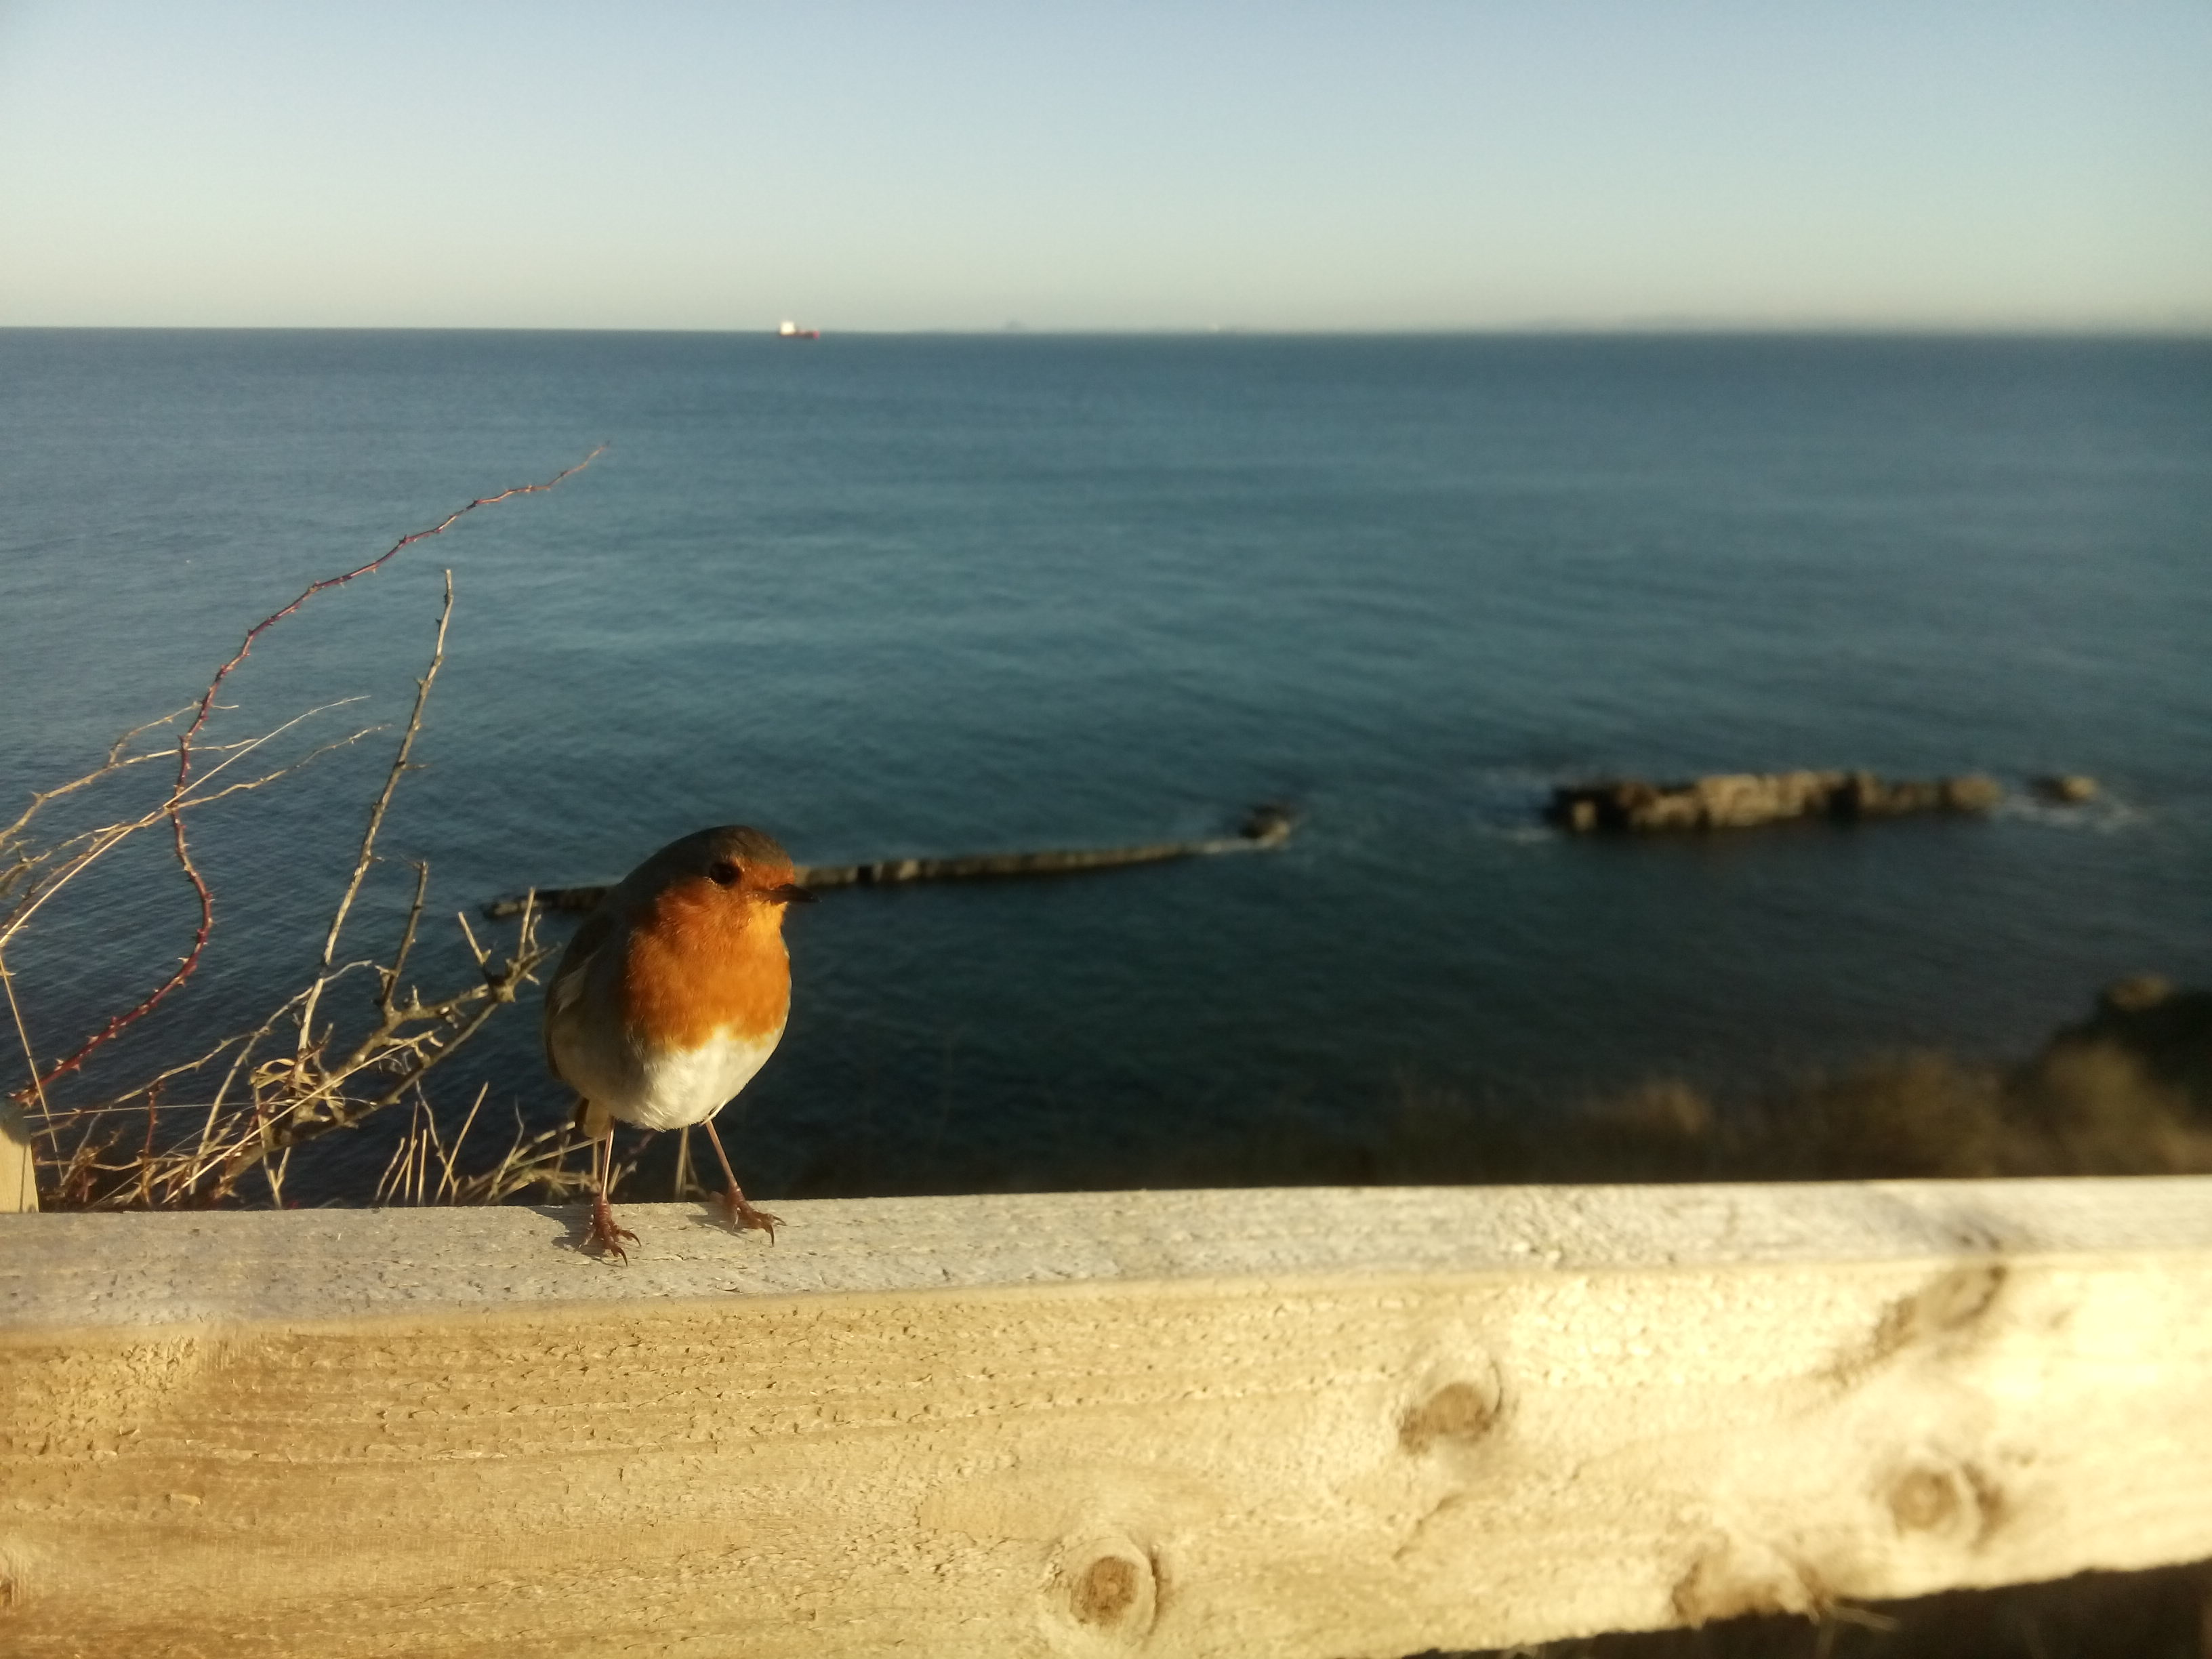 A small robin redbreast perched on a wooden fence, with clear blue sea and sky in the background